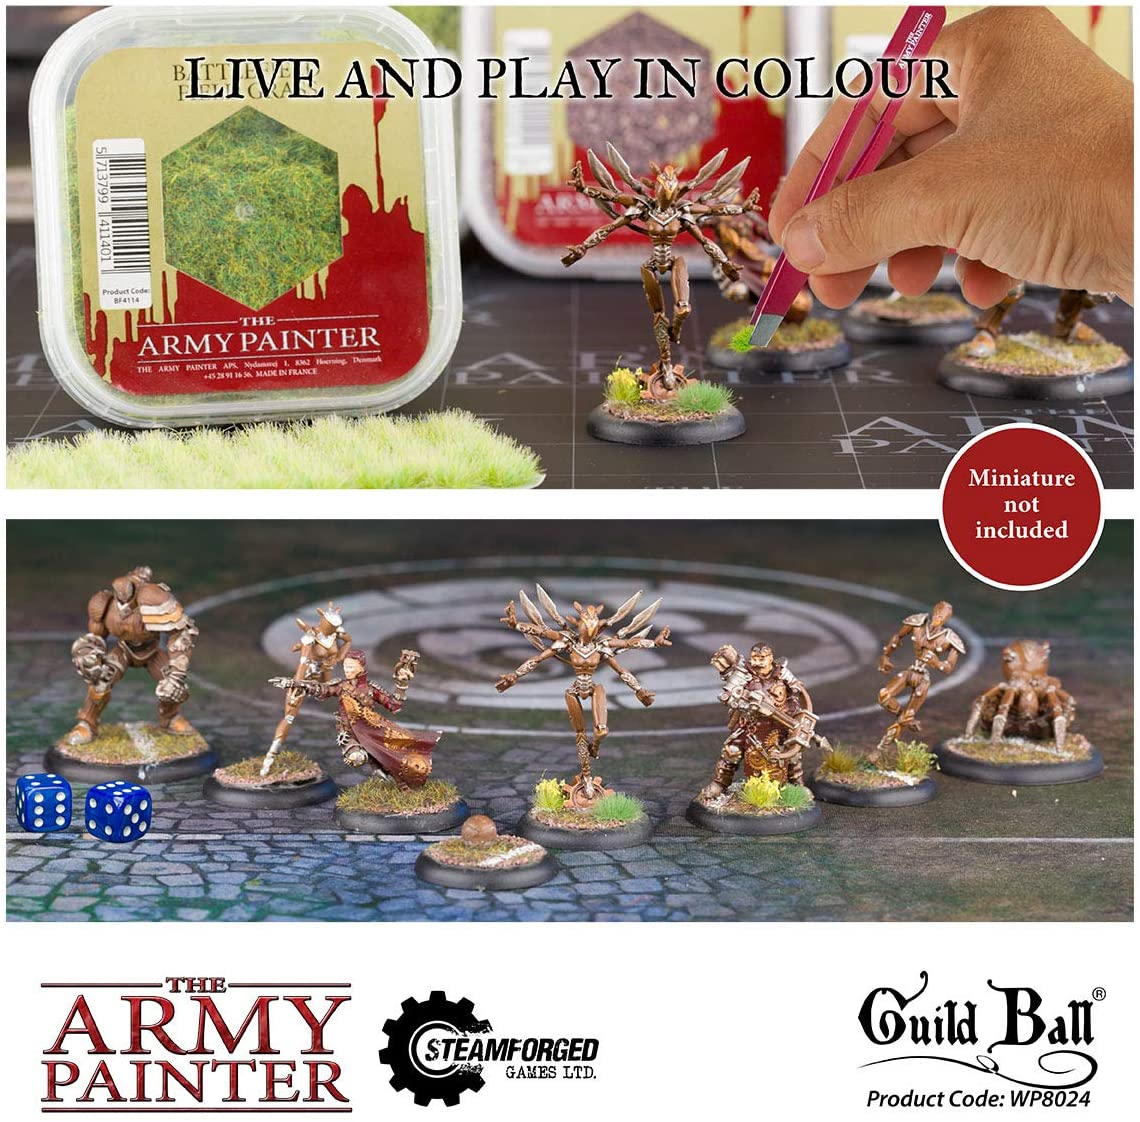 The Army Painter Guildball Miniature Paints